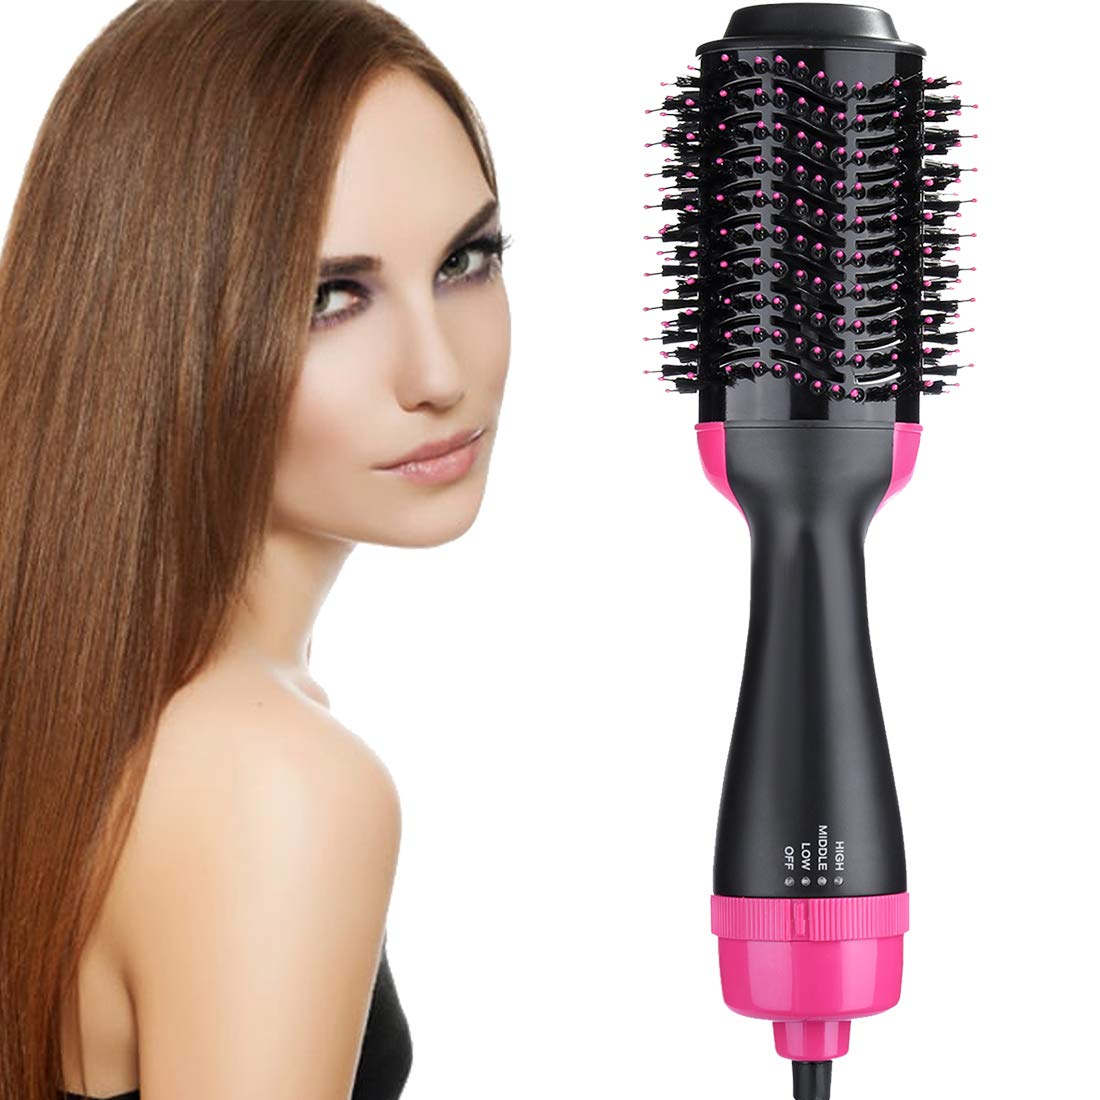 One Step Hair Dryer and Styler Volumizer, Hair Dryer Brush, Hot Air Brush, 3 in 1 Smooth Frizz with Ionic Technology Brush by ROUNDSQUARE by ROUNDSQUARE (Image #1)